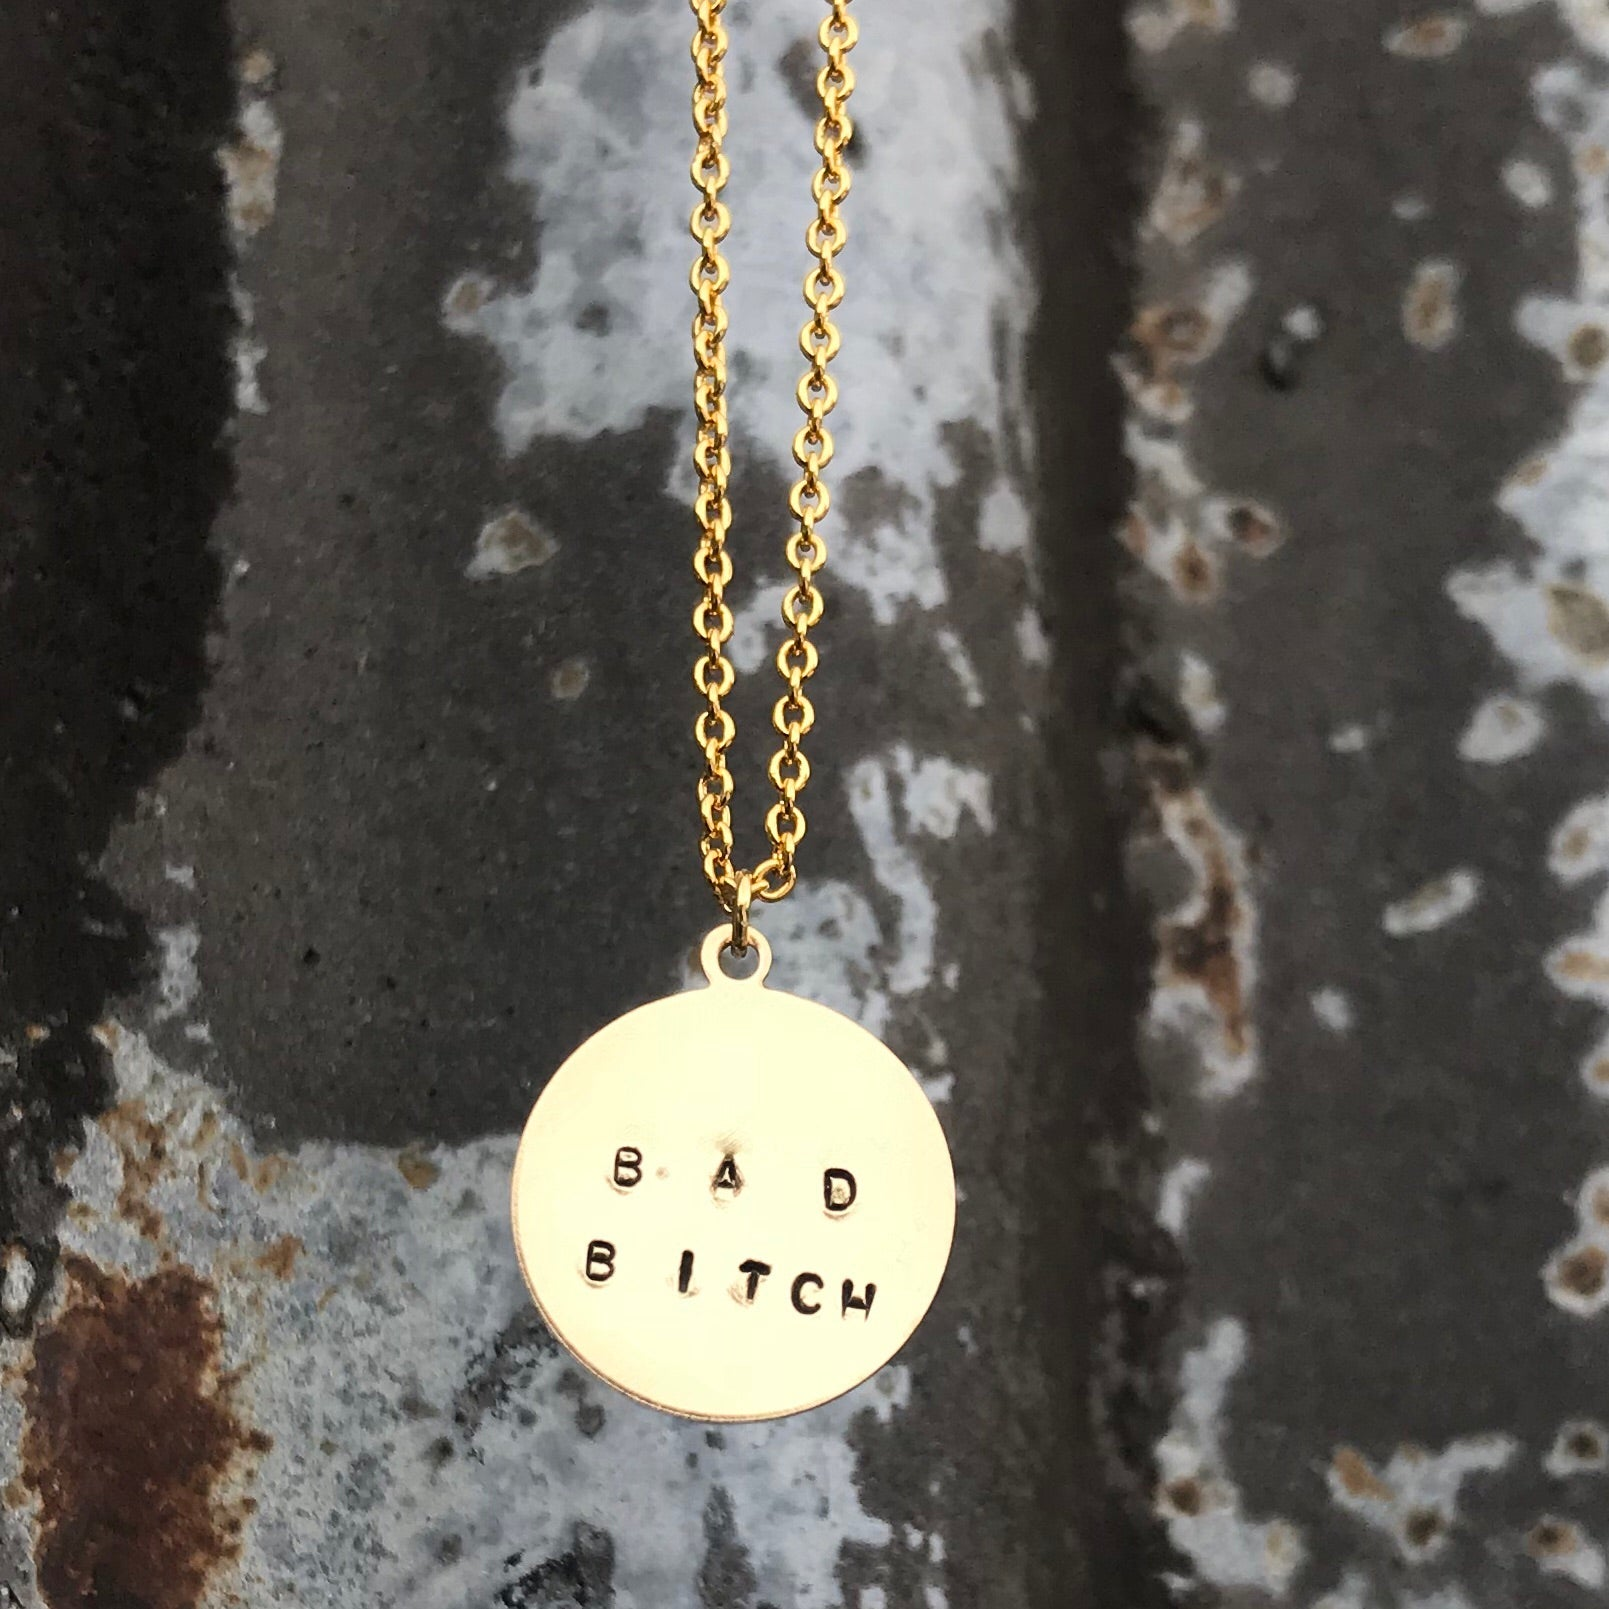 Bad Bitch Pendant